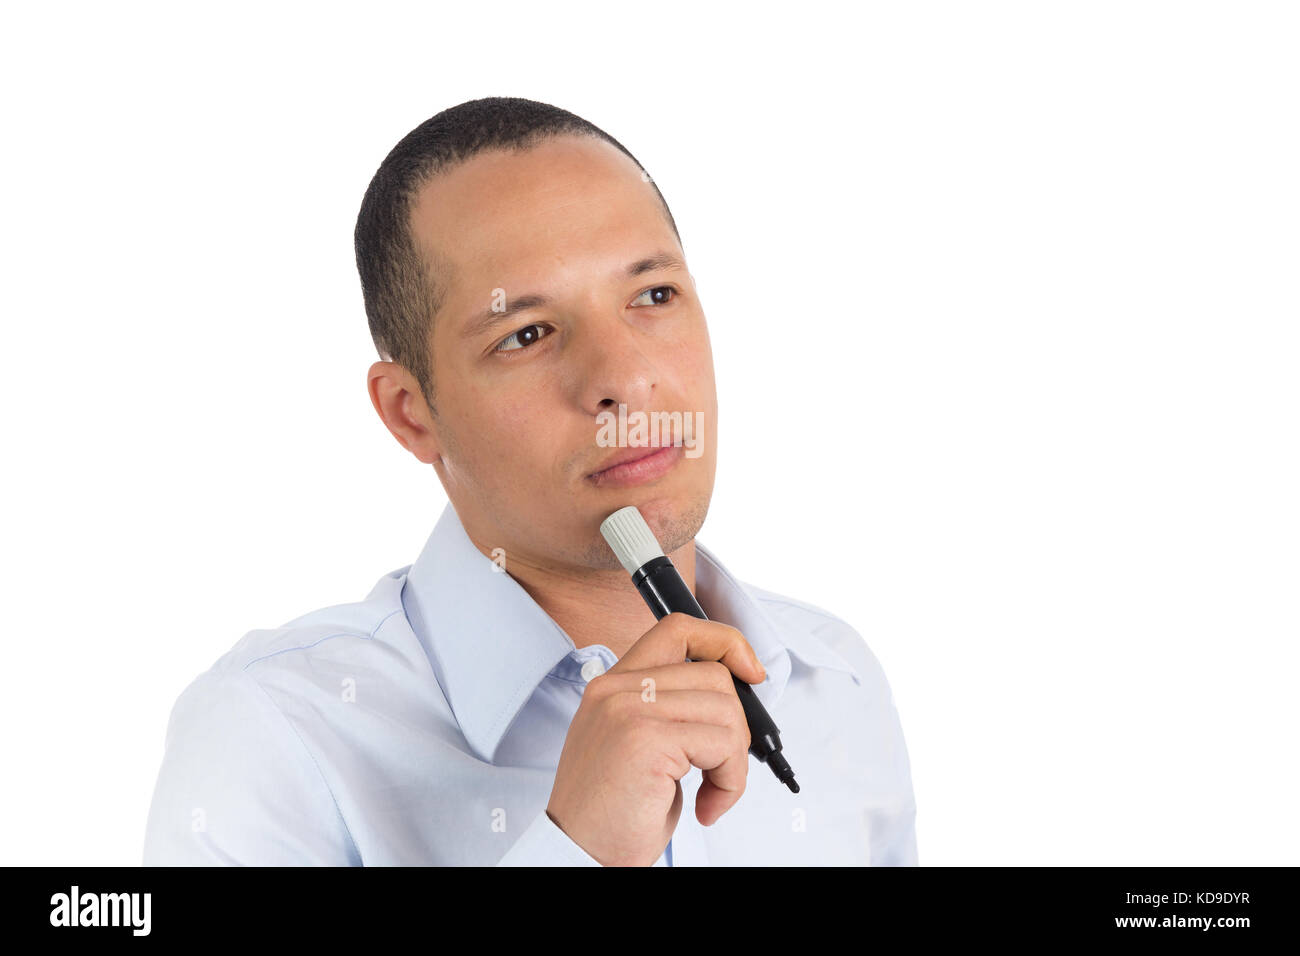 Entrepreneurial man holds a black permanent marker. Isolated person on white background, he wears light blue social - Stock Image